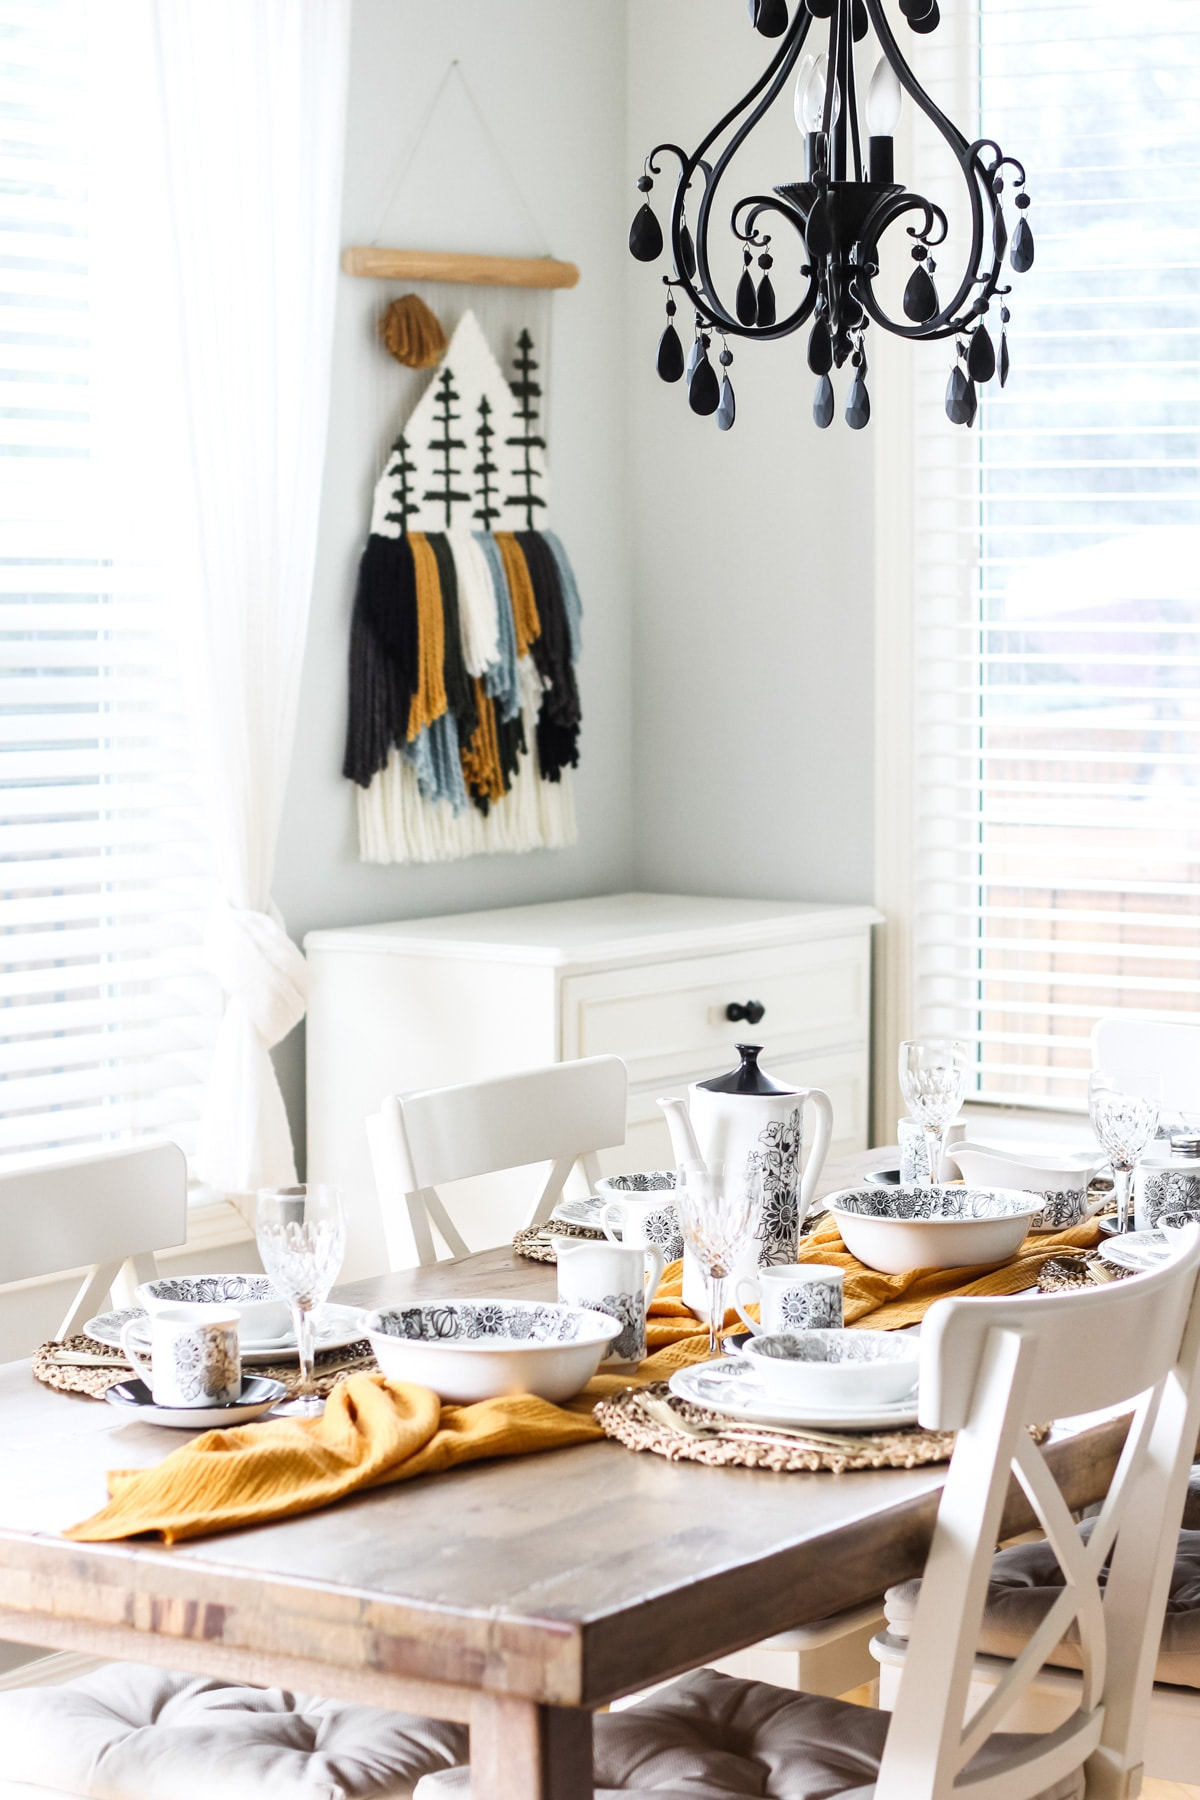 a wooden table with white chairs is set for dining. a gold runner runs down the middle of the table. at each place setting are black and white flower patterned dishes. from the ceilings hangs a black chandelier. in the background is a yarn mountain and tree wall hanging